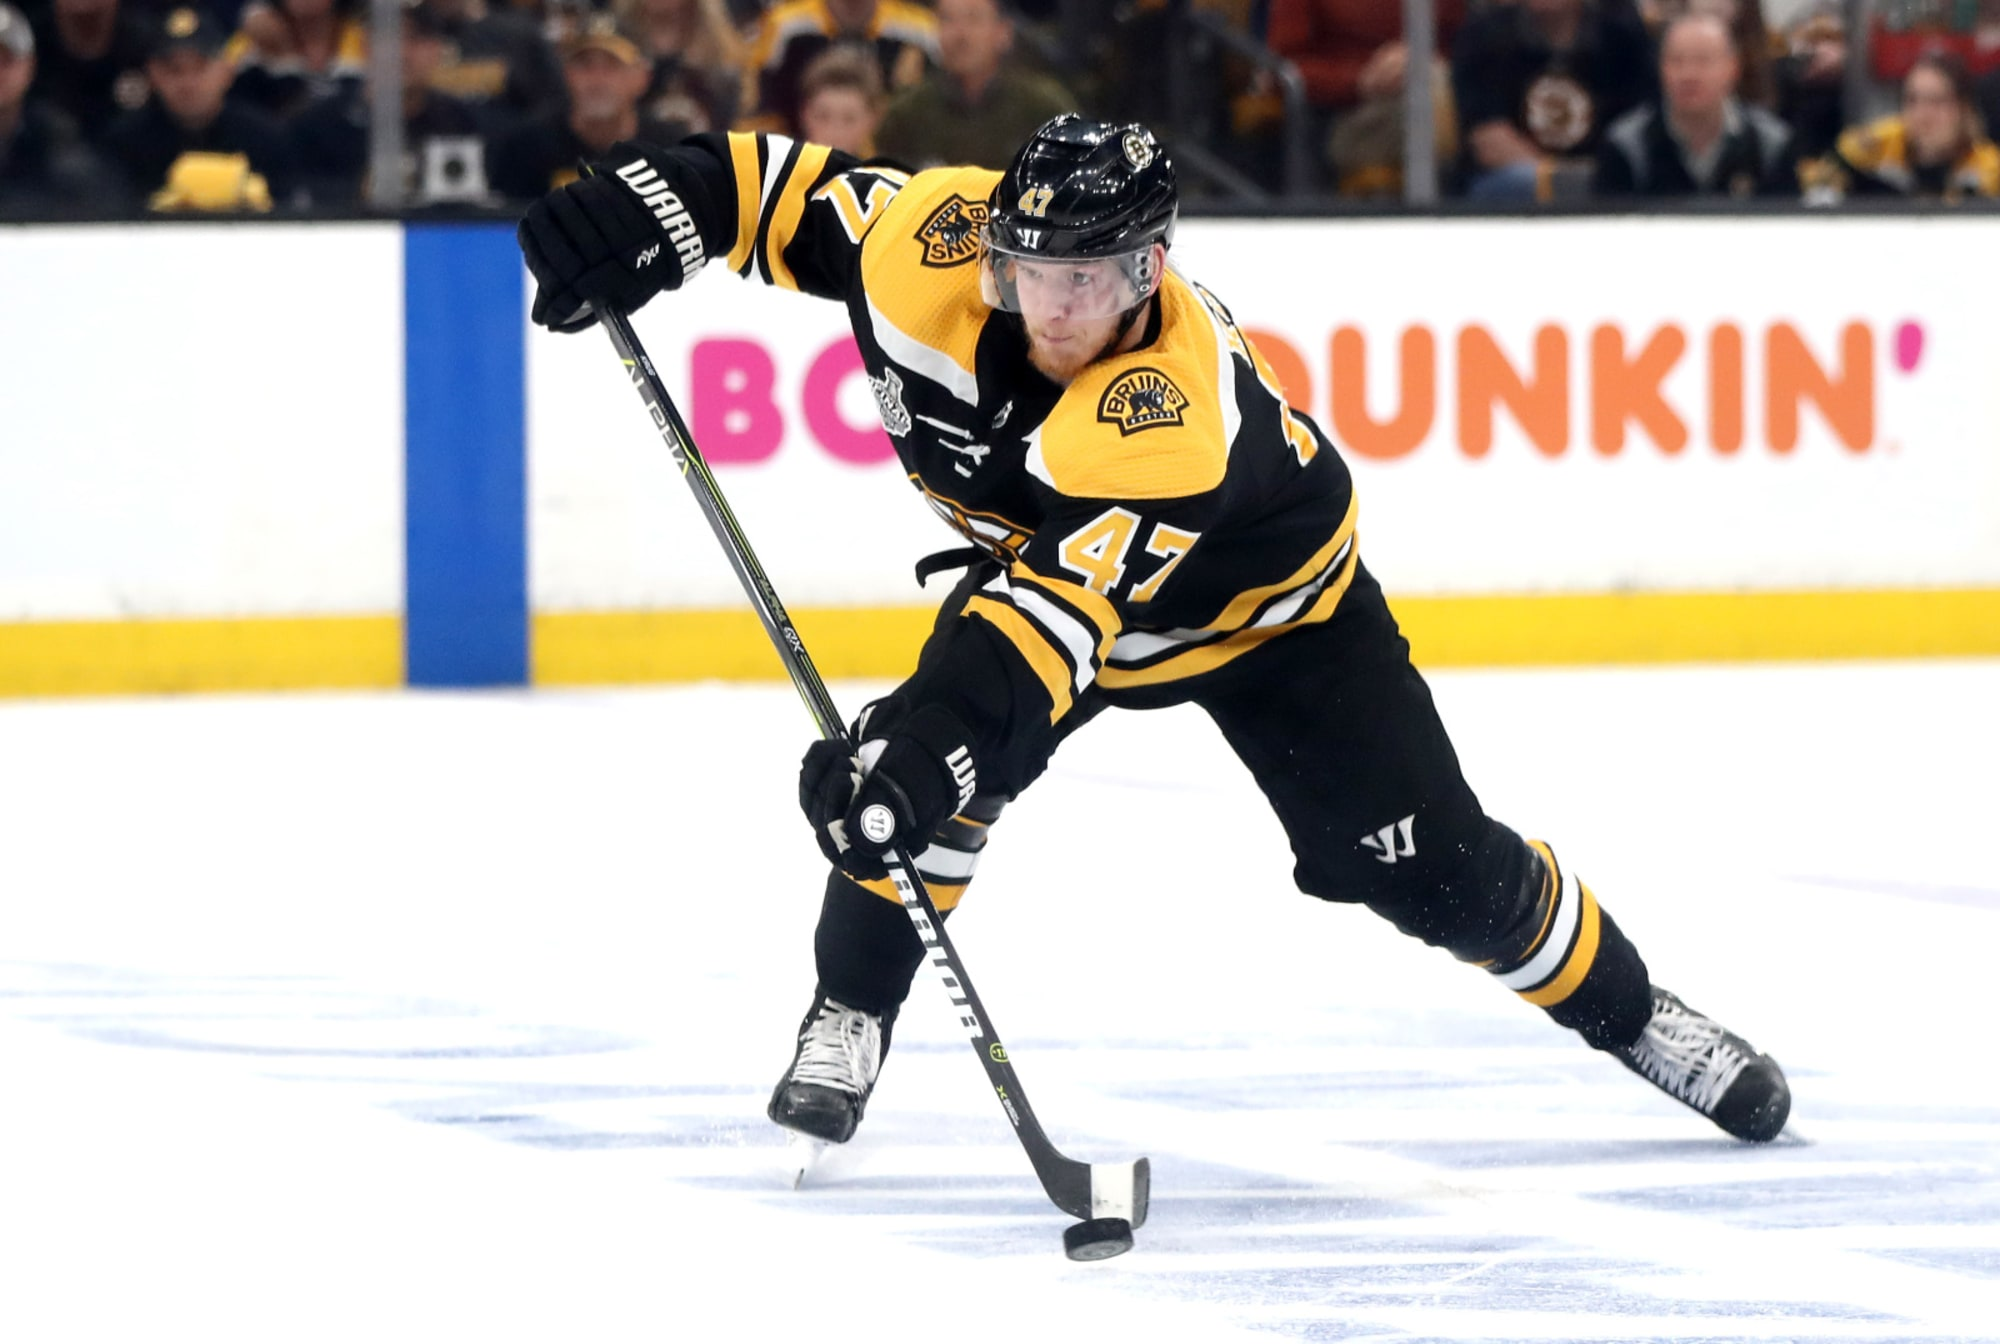 Boston Bruins Trading Torey Krug Would Be Foolish